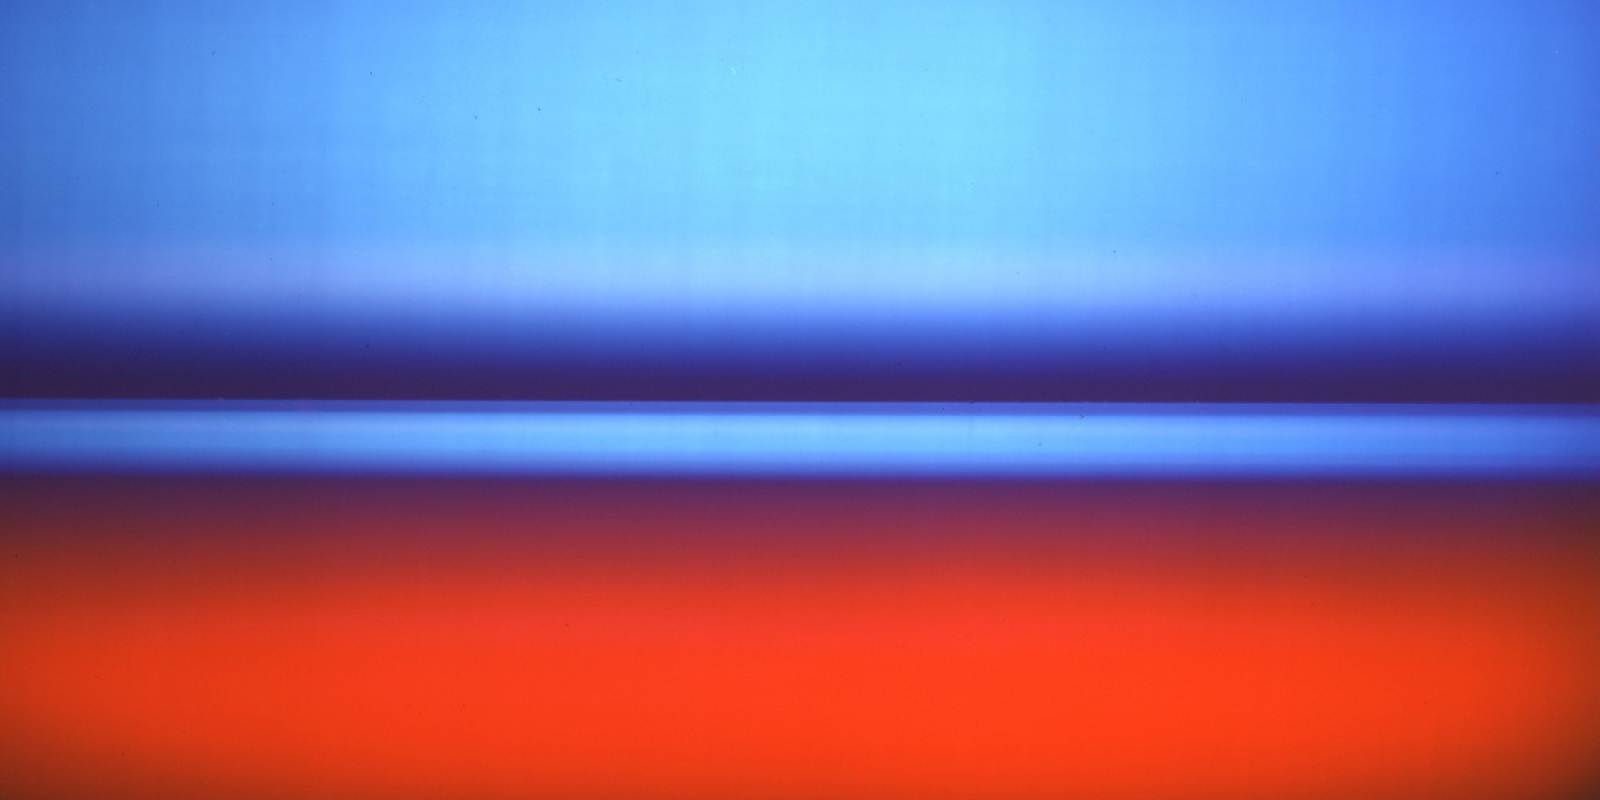 Rob and Nick Carter - RN272, Neon, Clear Ruby, Blue Coated Turquoise Pumped Blue, 2003 · © Copyright 2018